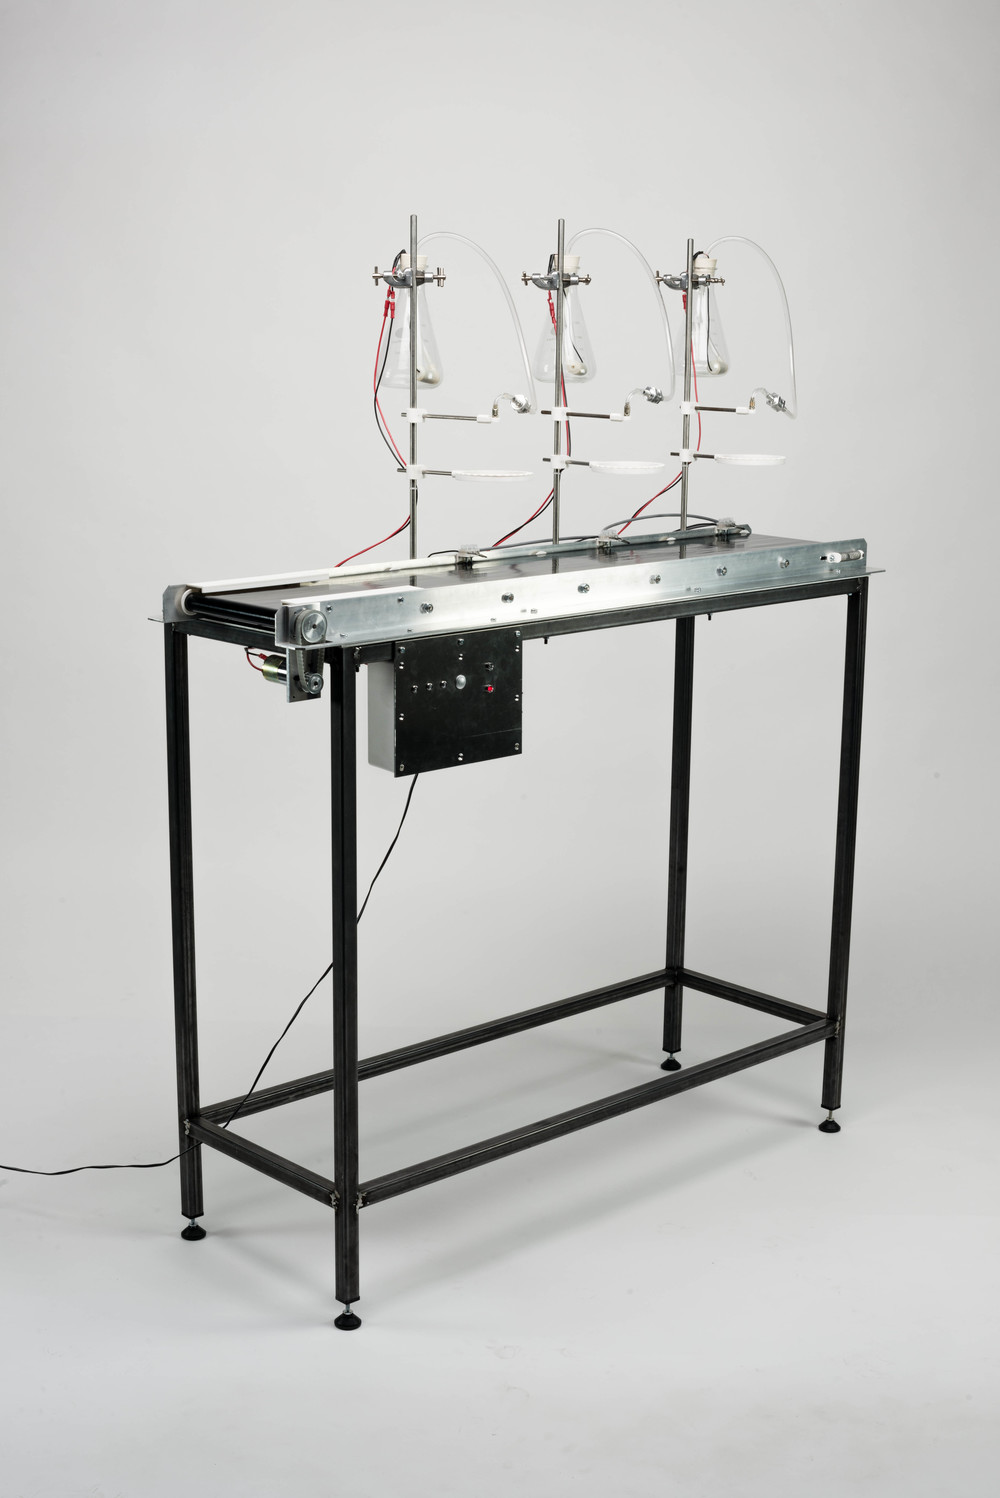 Autonomous Chemigram Machine